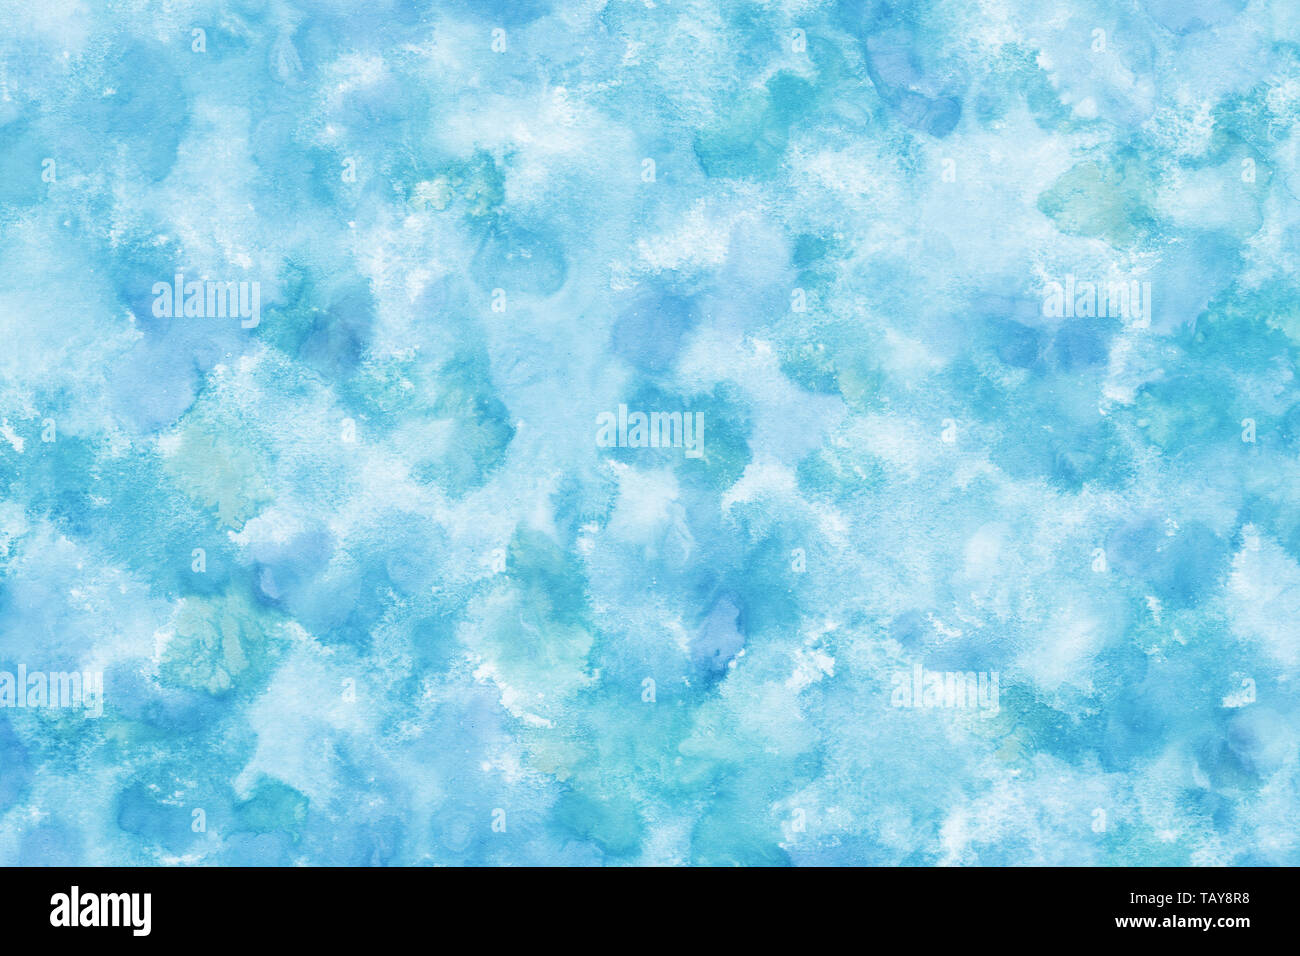 Pastel Color Blue Abstract Or Watercolor Paint Texture Background Stock Photo Alamy